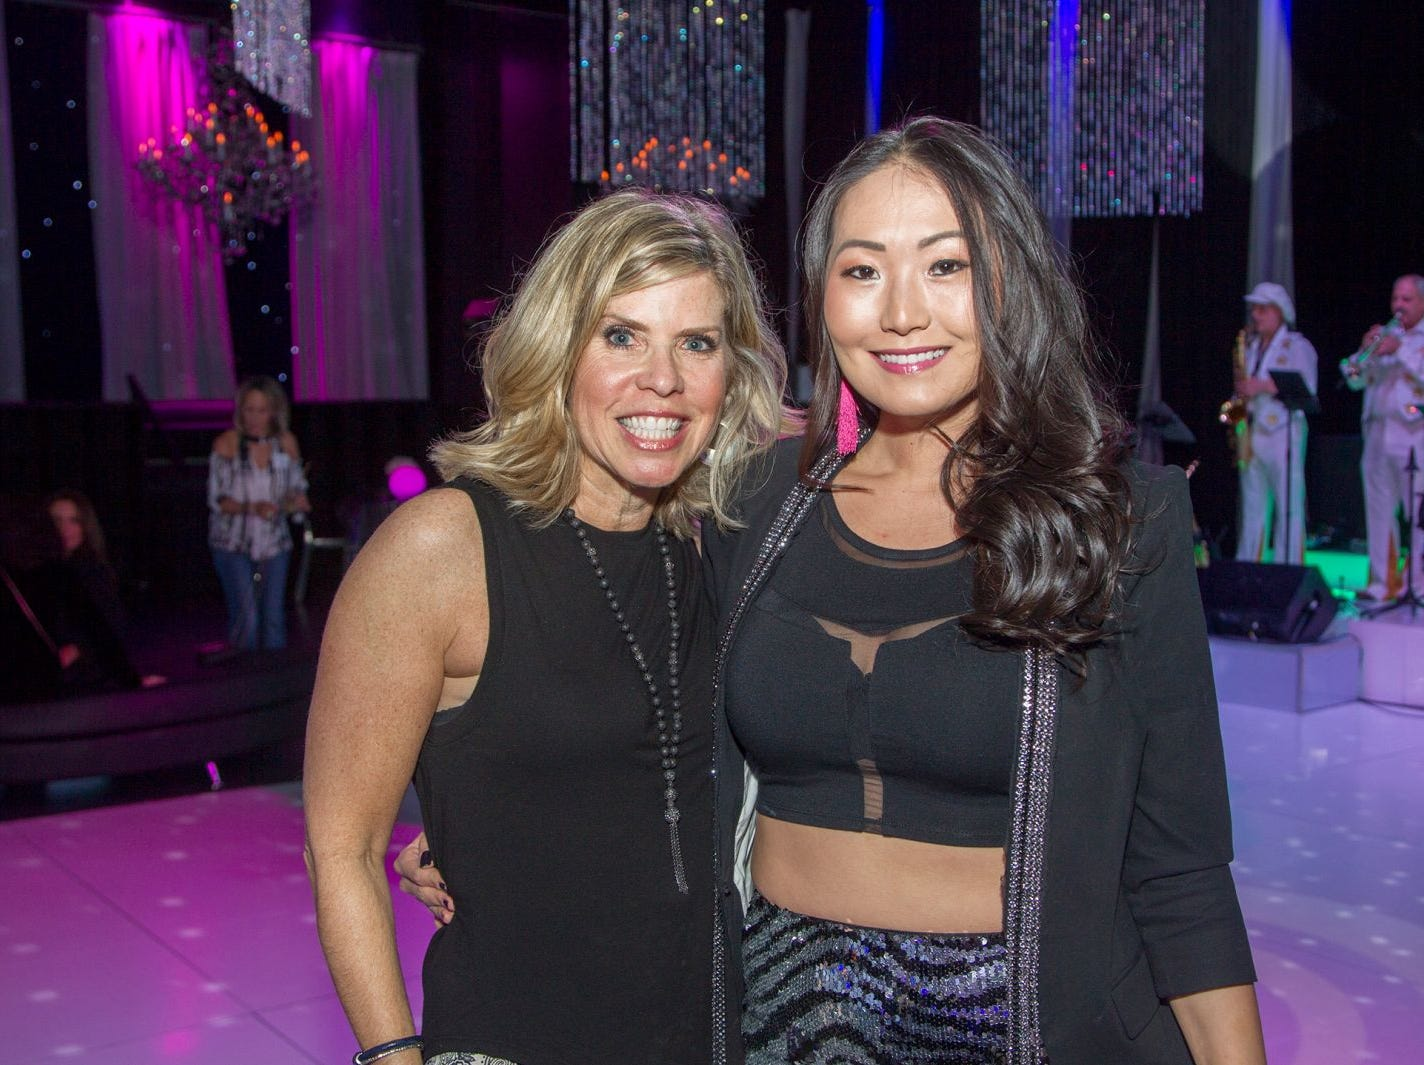 Donna Weintraub, Mina Barany. Jewish Federation of Northern New Jersey held its first Girl's Night Out dance party at Space in Englewood. 01/24/2019